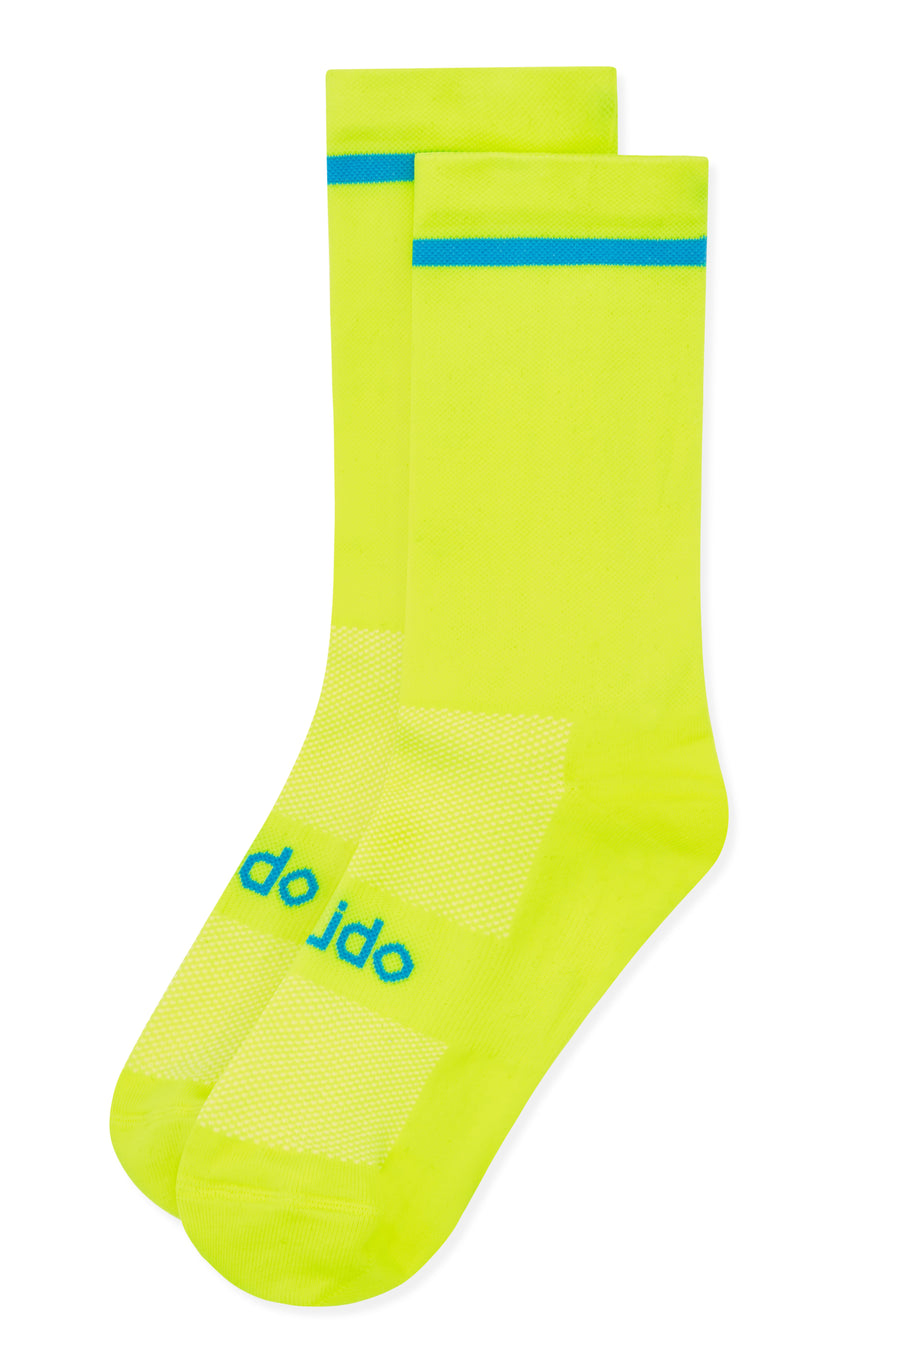 Yellow cycling socks with blue trim